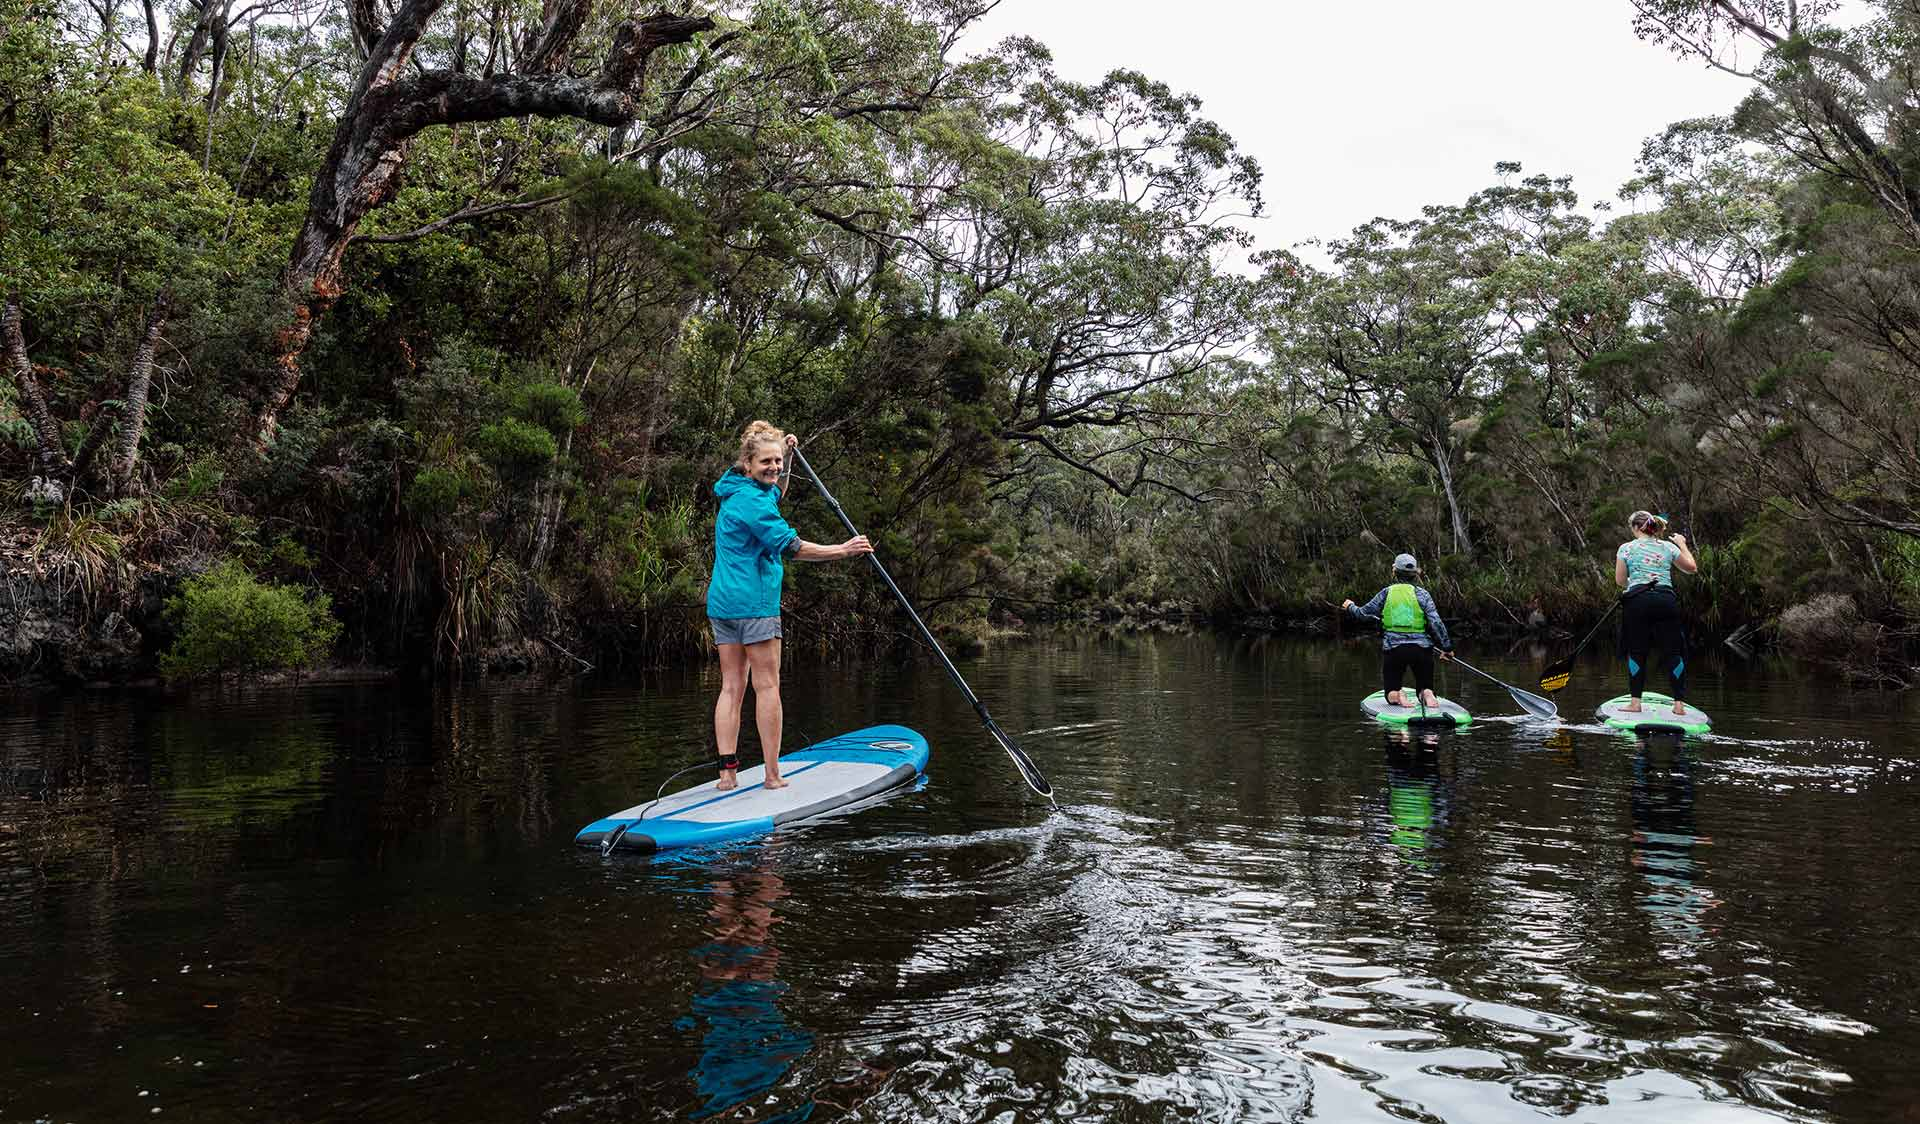 Three women on stand-up paddle boards paddle up the Yeerung River.